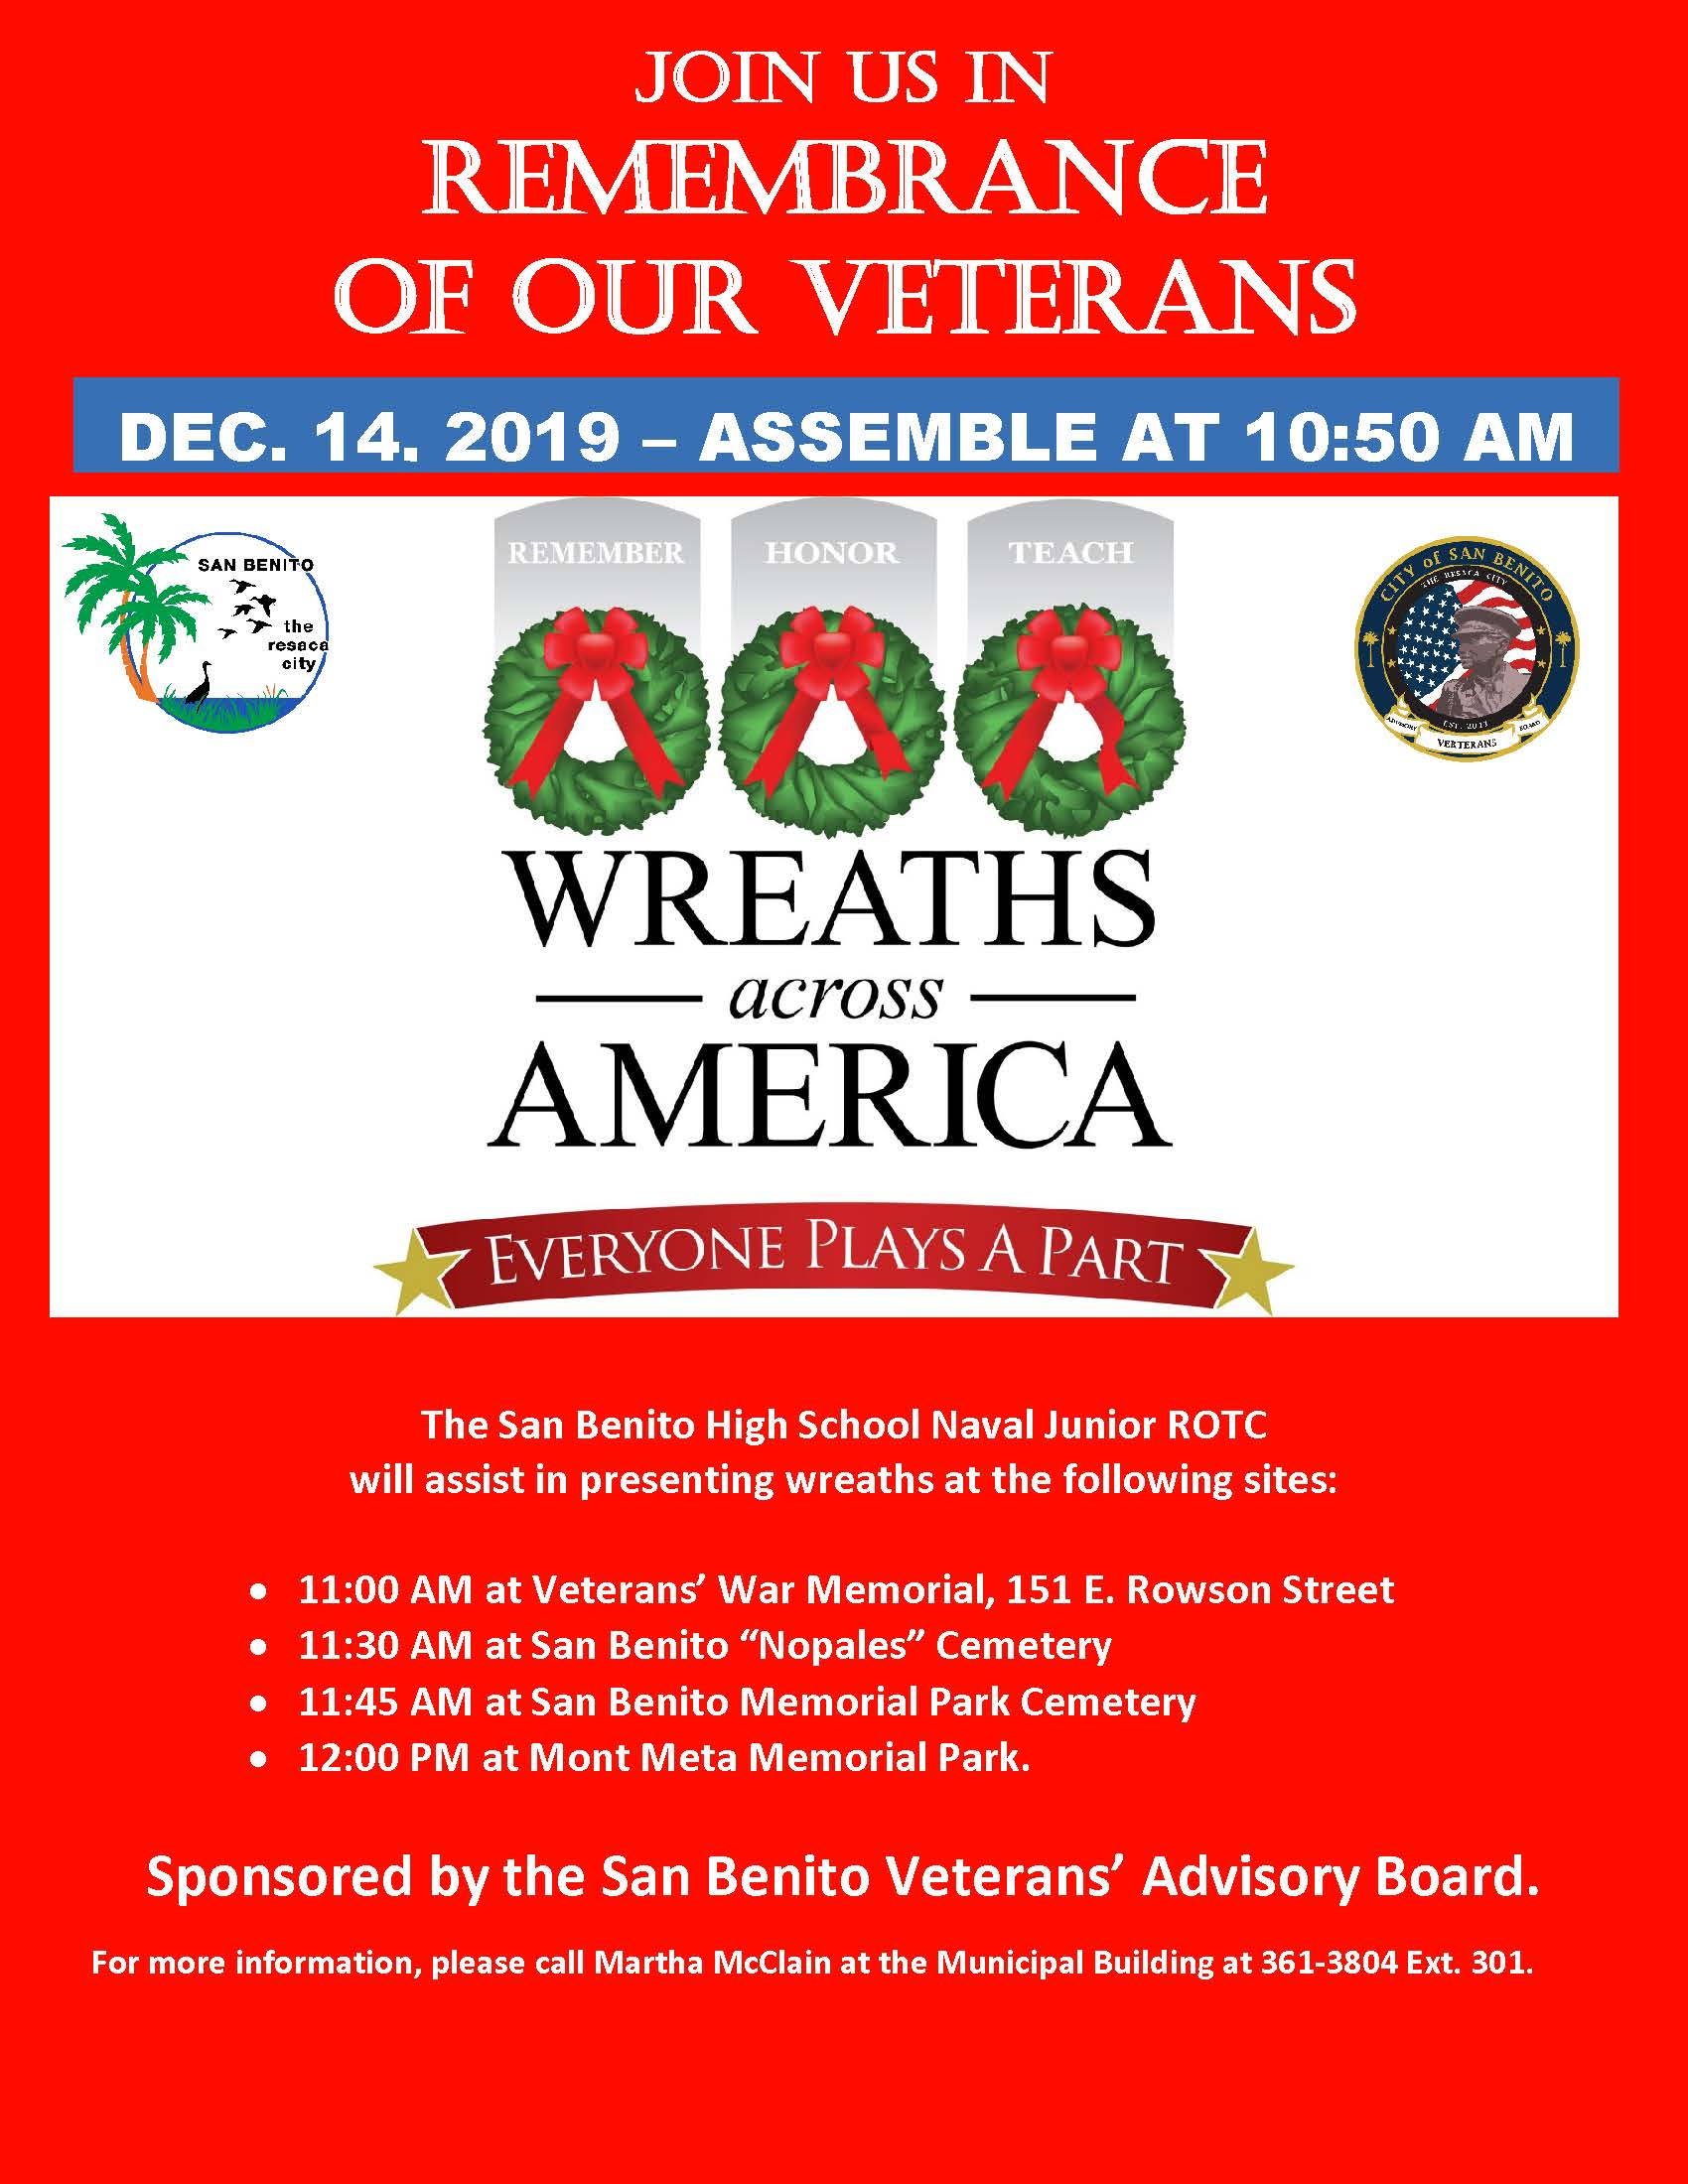 Wreaths flyer-ad